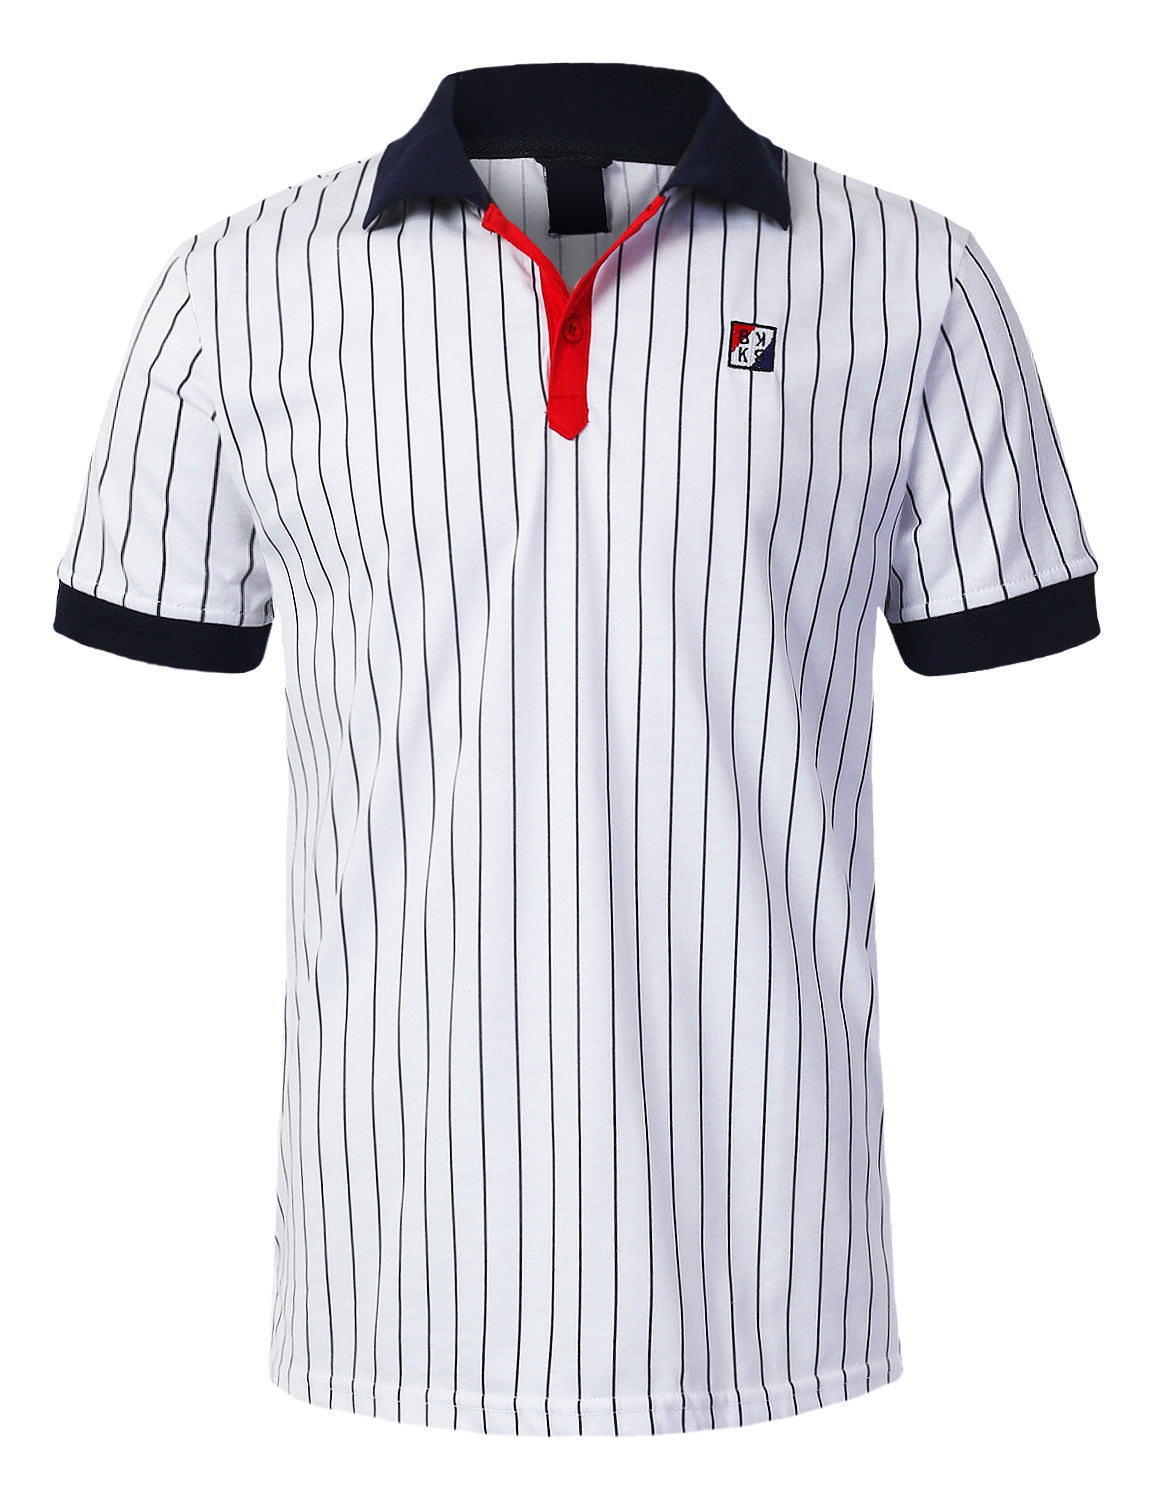 WHITE Classic Striped Polo T-shirt - URBANCREWS